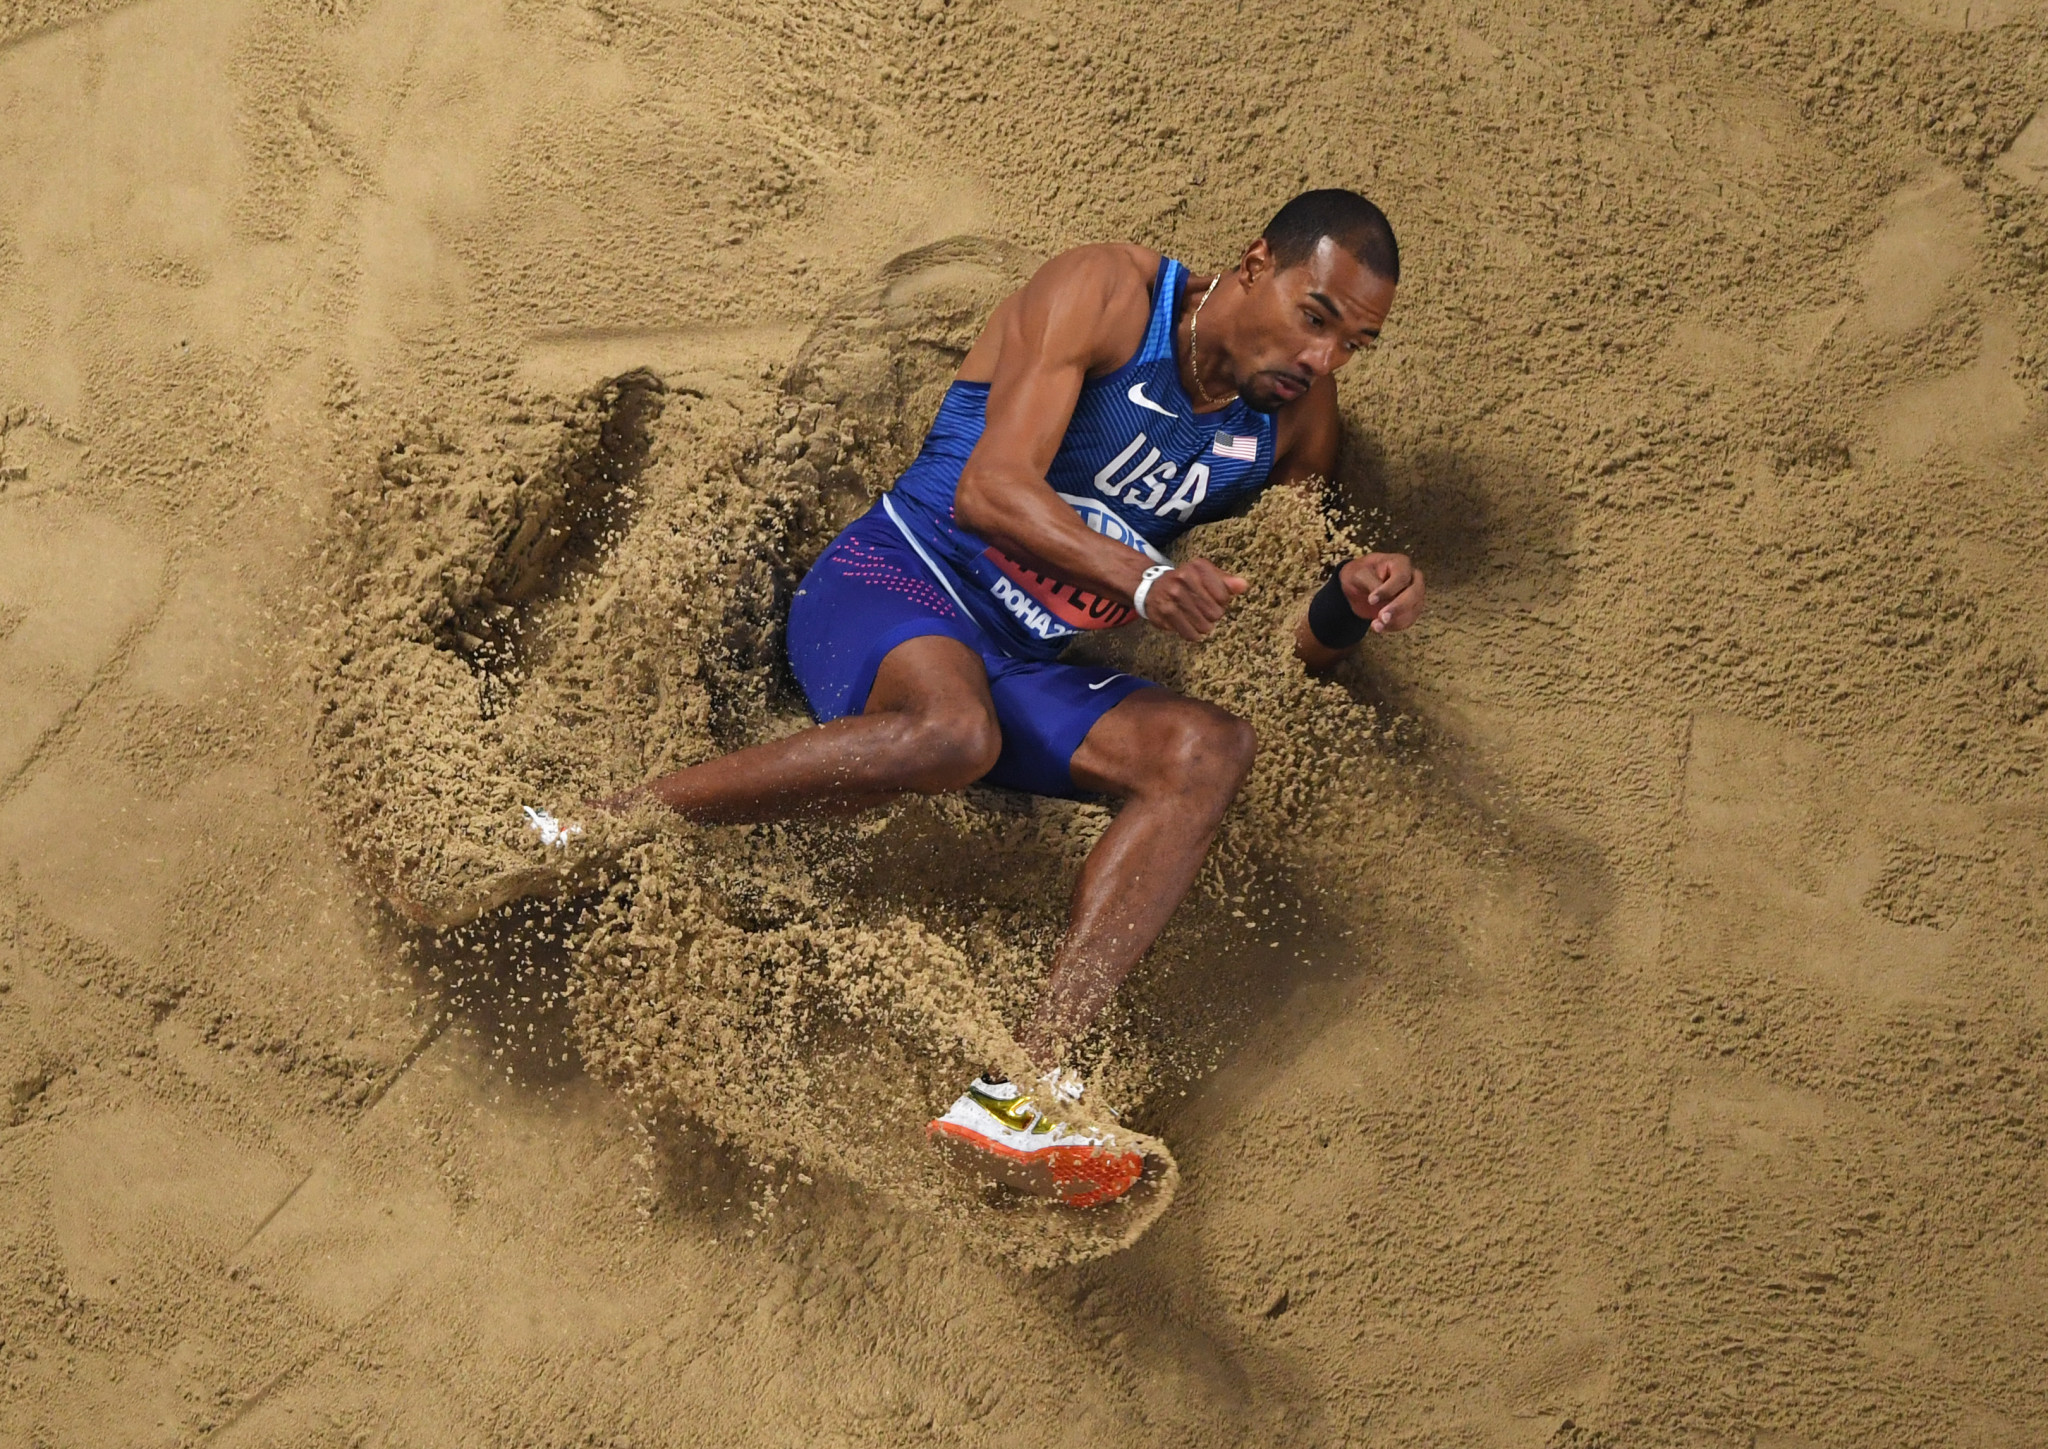 Triple jumper Taylor among field for World Athletics Continental Tour meeting in Hungary